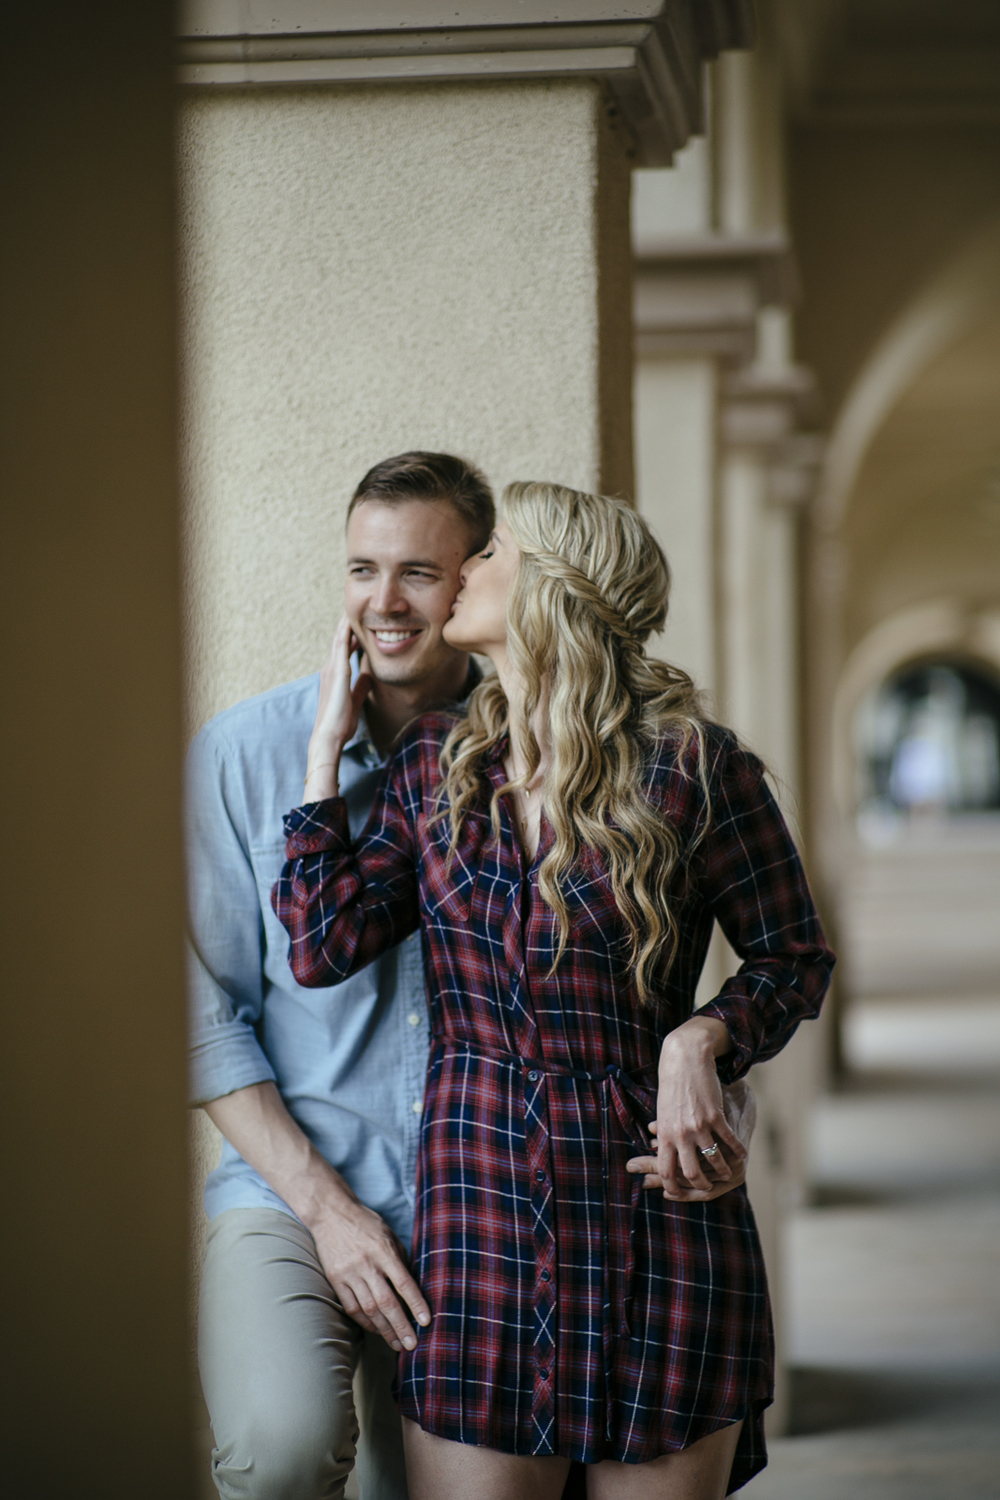 NANCY_&_AARON_ENGAGEMENT_BALBOA_PARKS_LEAF_PHOTOGRAPHY_2016_5699.JPG